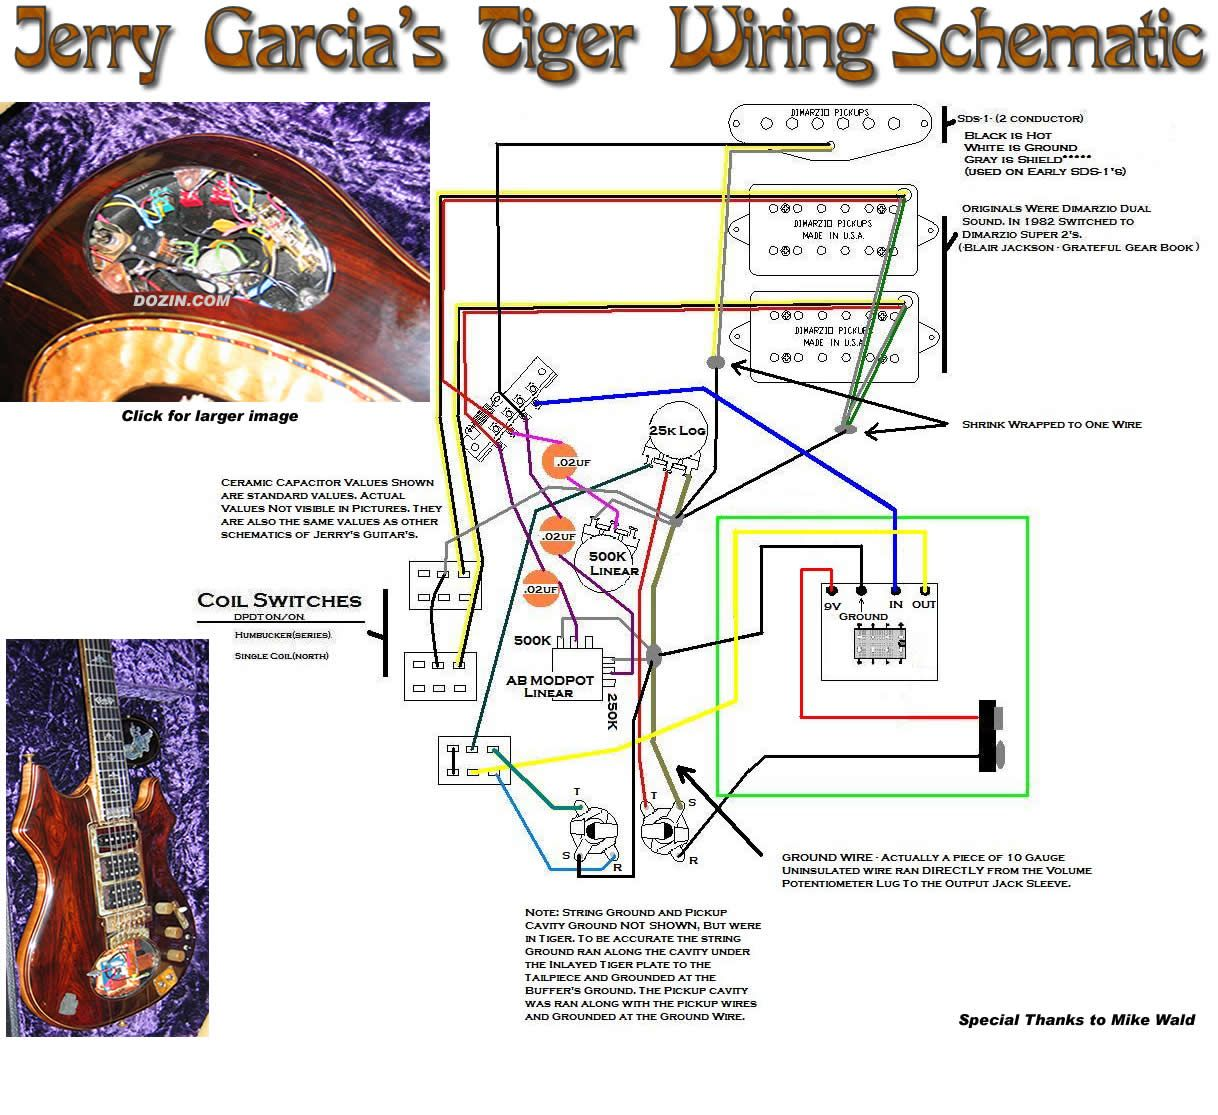 hight resolution of jerry garcia s tiger schematic mod music guitar kits telecaster guitar guitar pickups